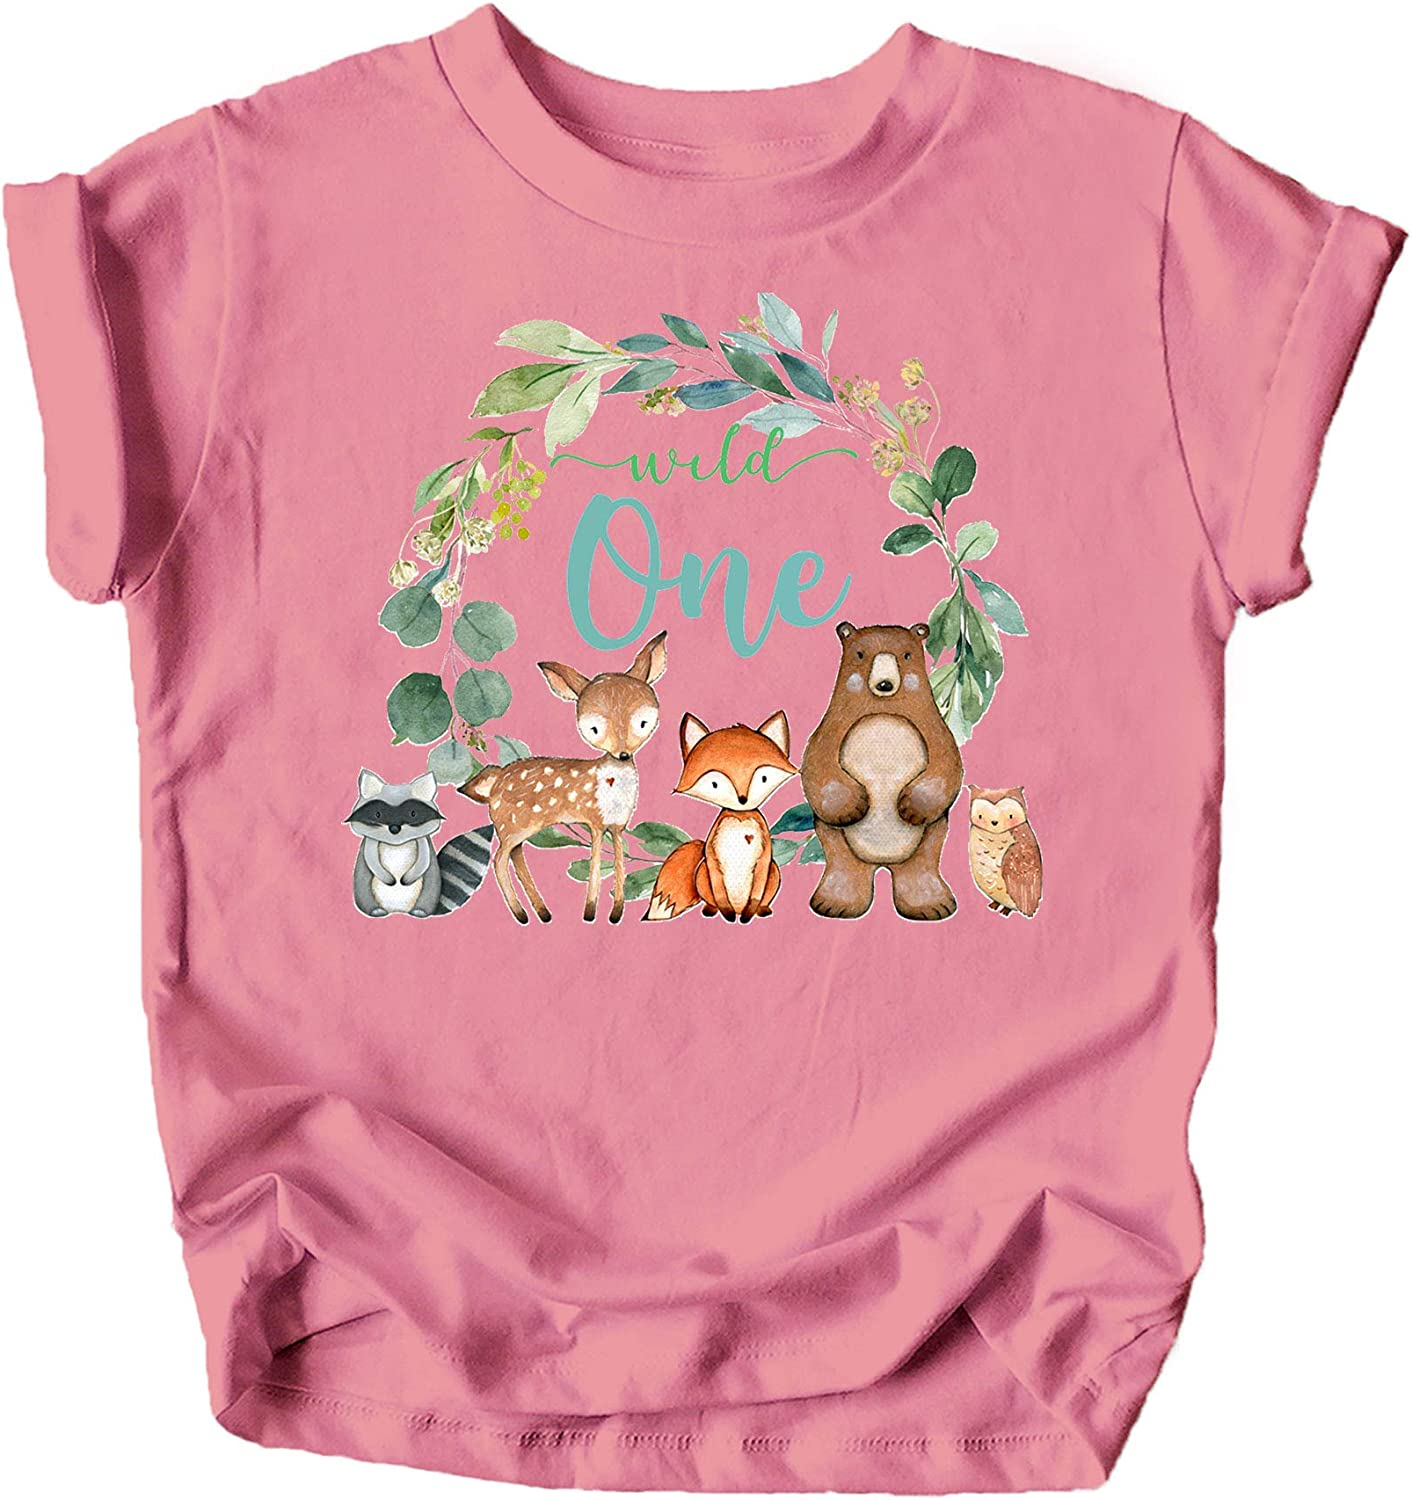 Wild One Wreath with Woodland Animals T-Shirts and Raglans for Baby Girls and Boys